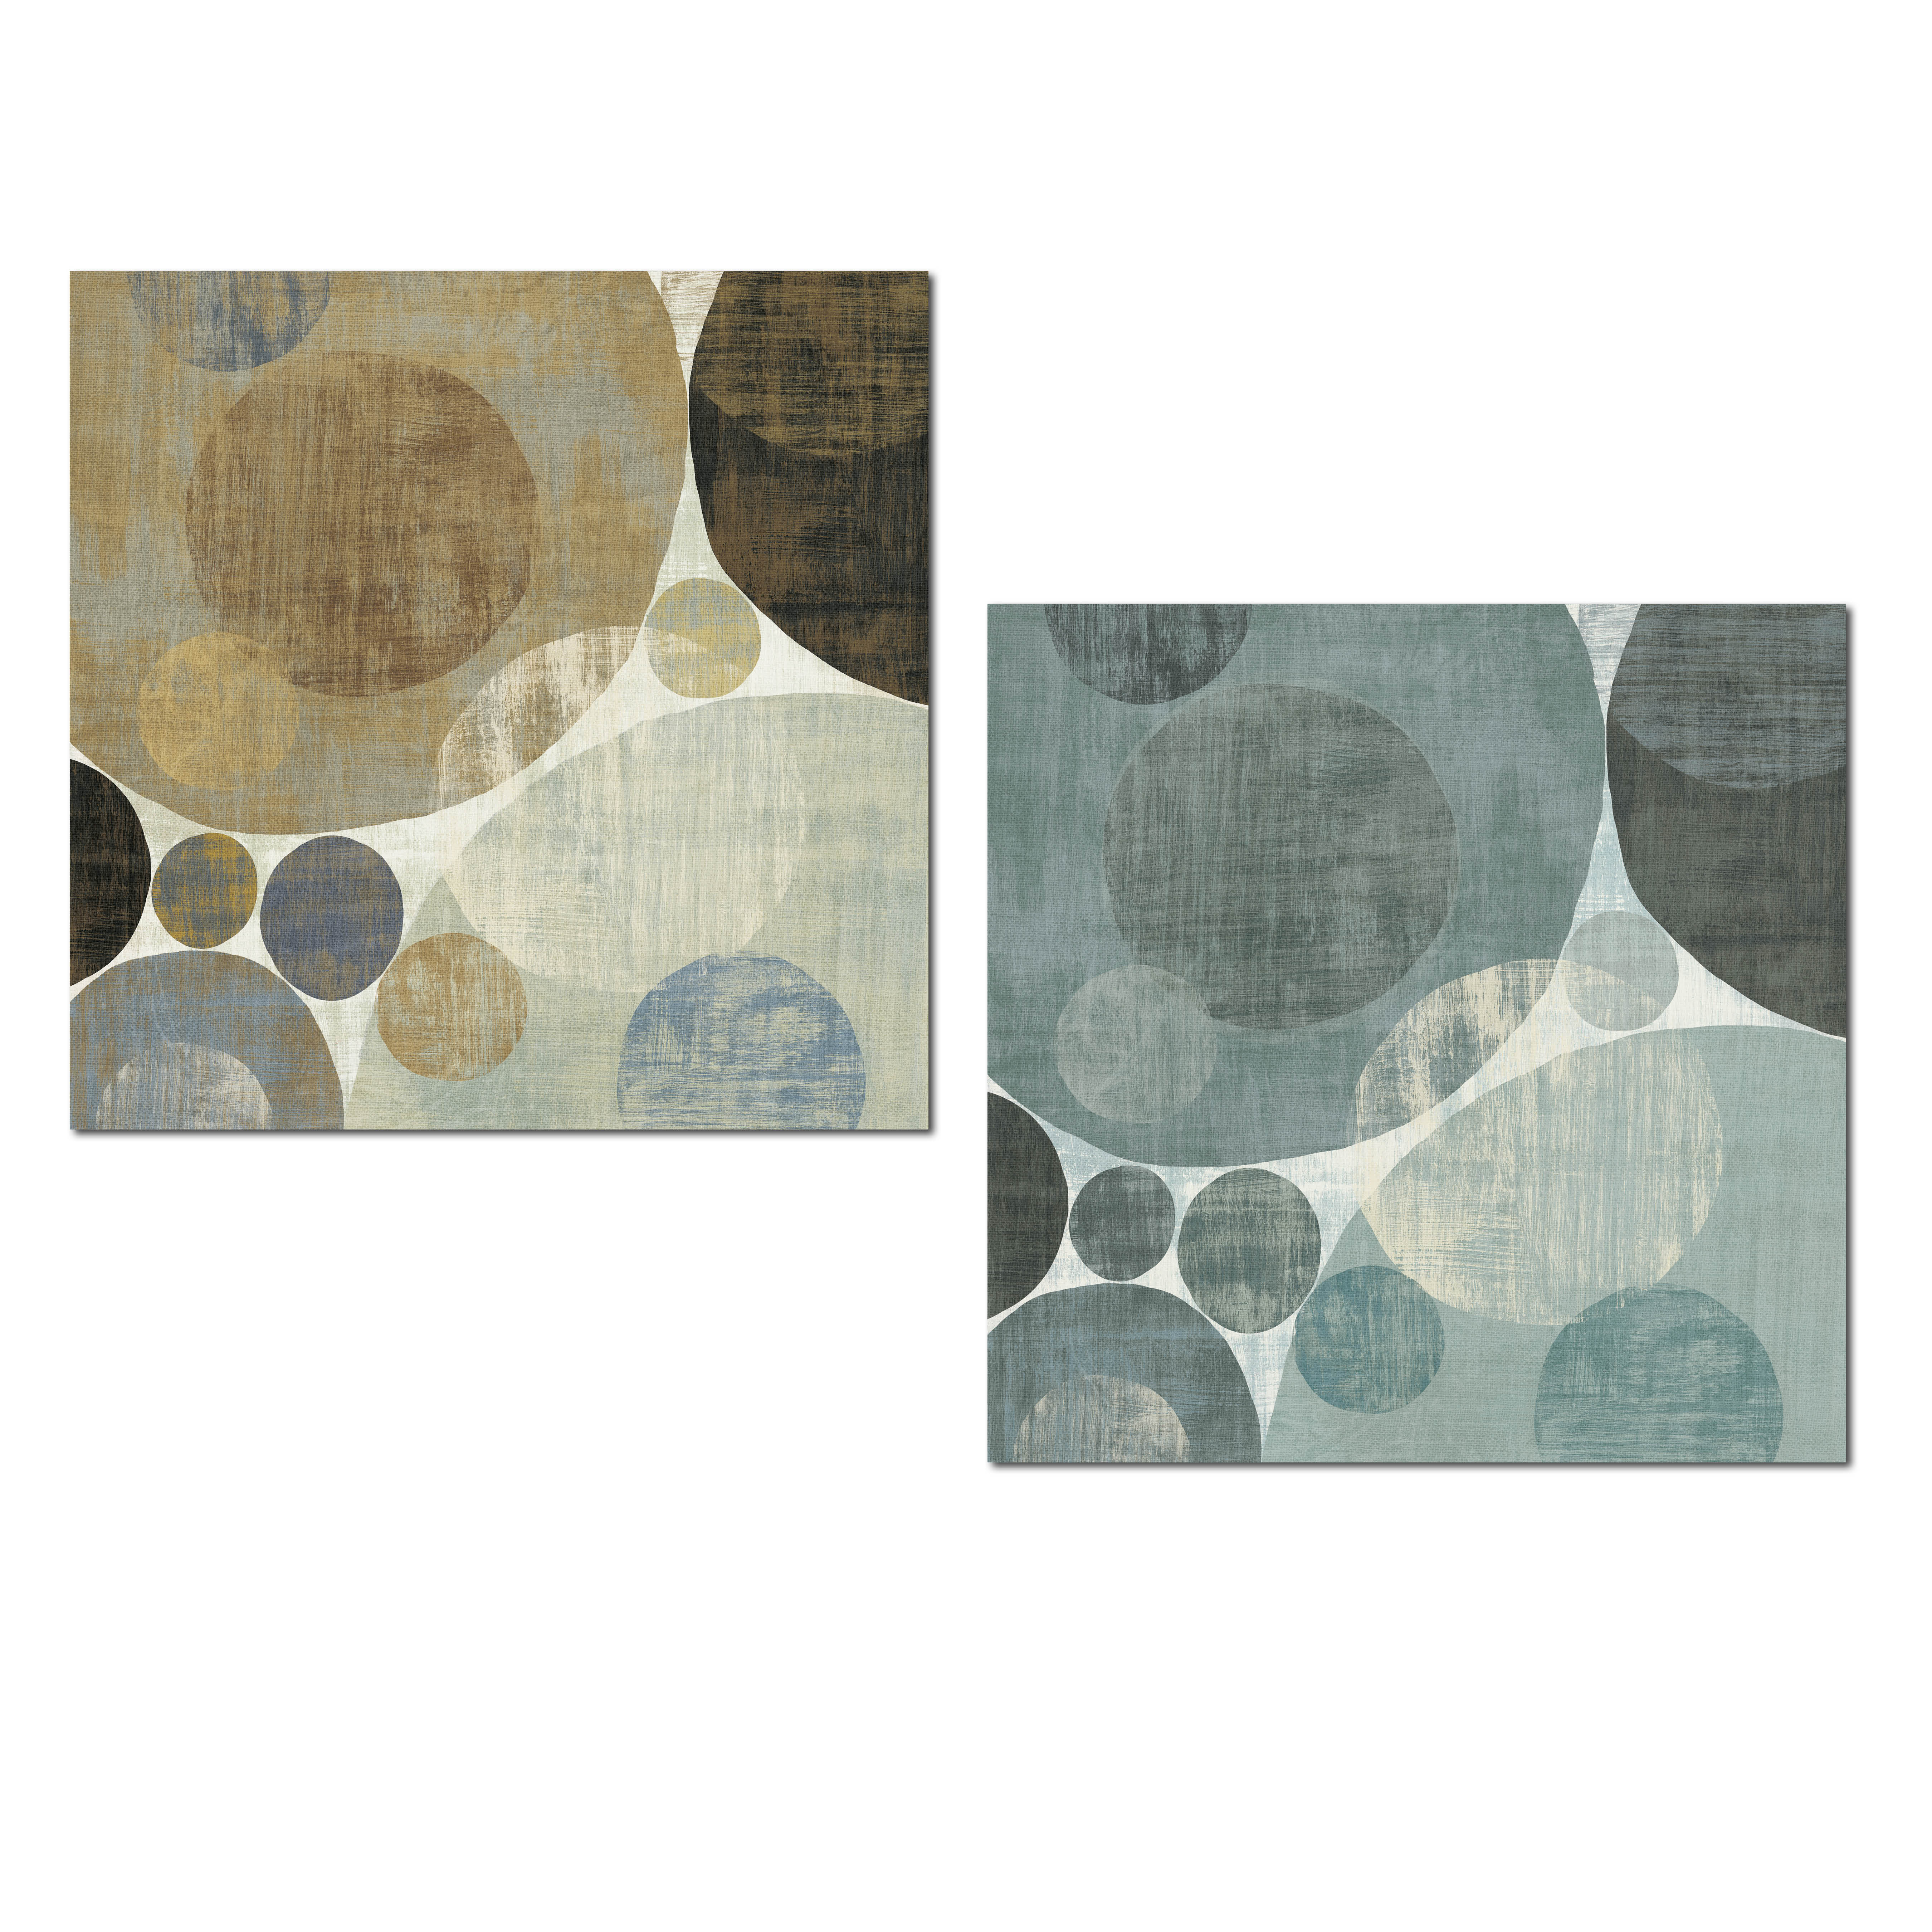 Lovely Blue and Brown Abstract Circle Patterned Set by Michael Mullan; Two 12x12in Unframed Paper Posters